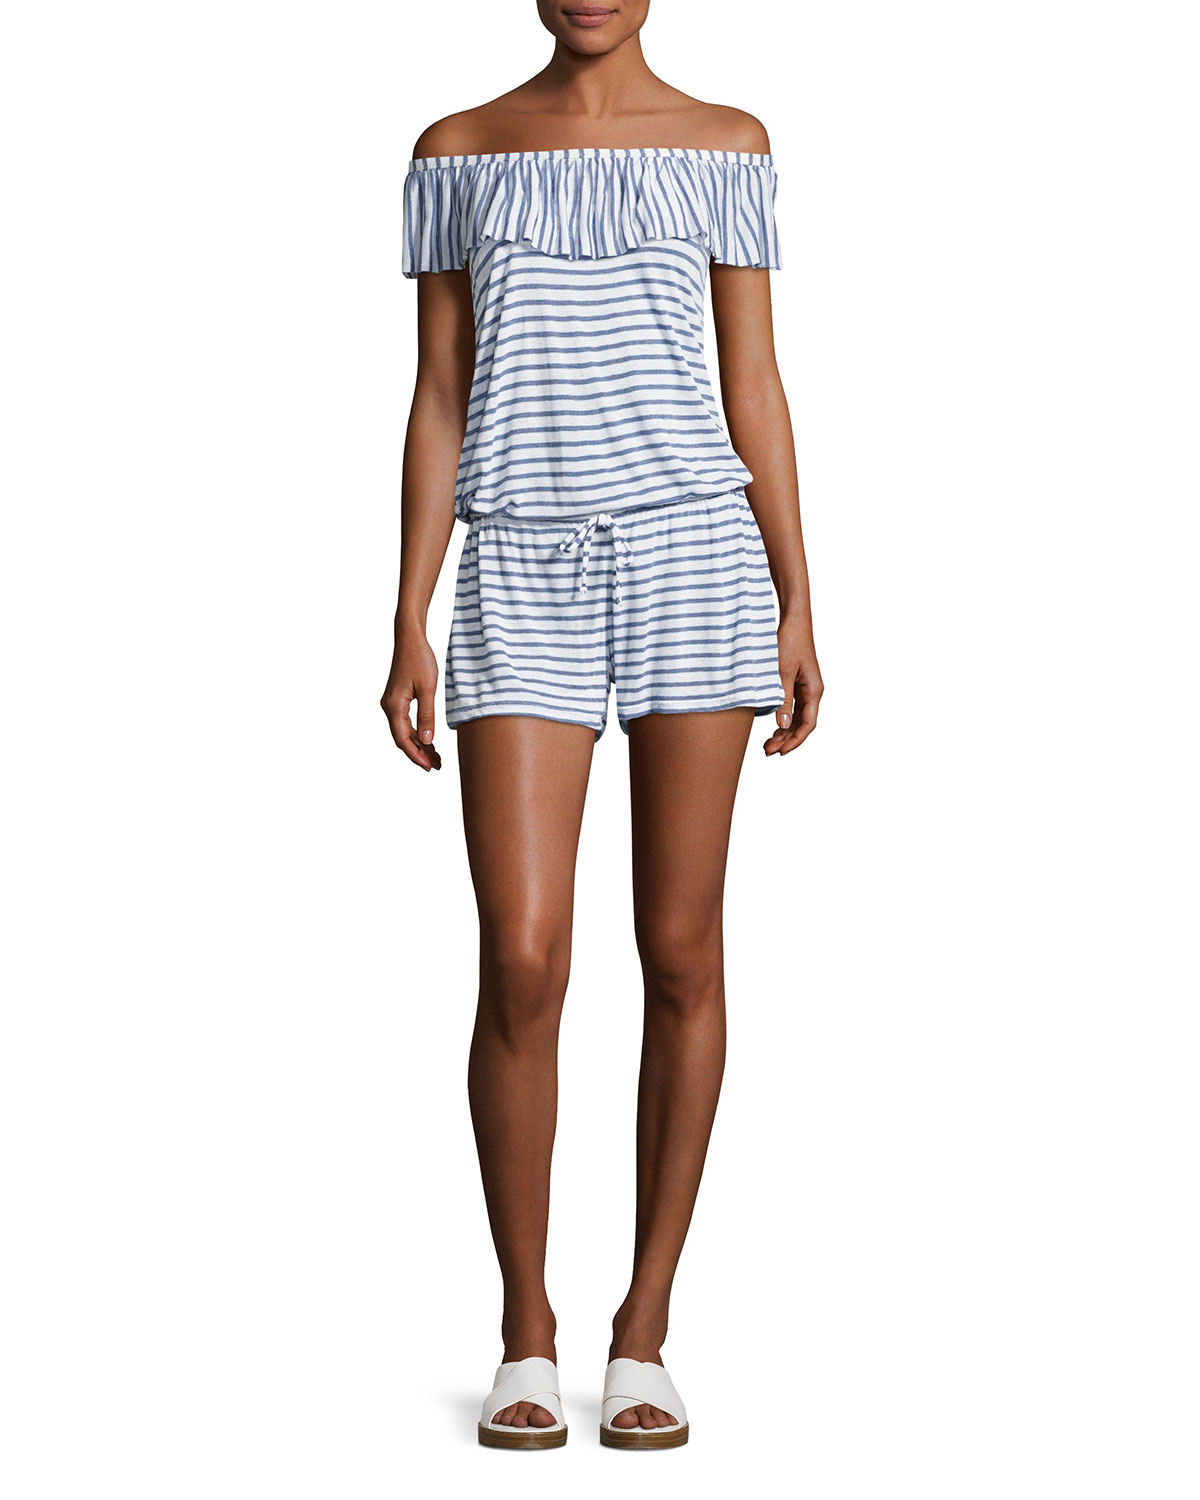 dd0088830316 Splendid Chambray All Day Off-the-Shoulder Striped Coverup Romper ...